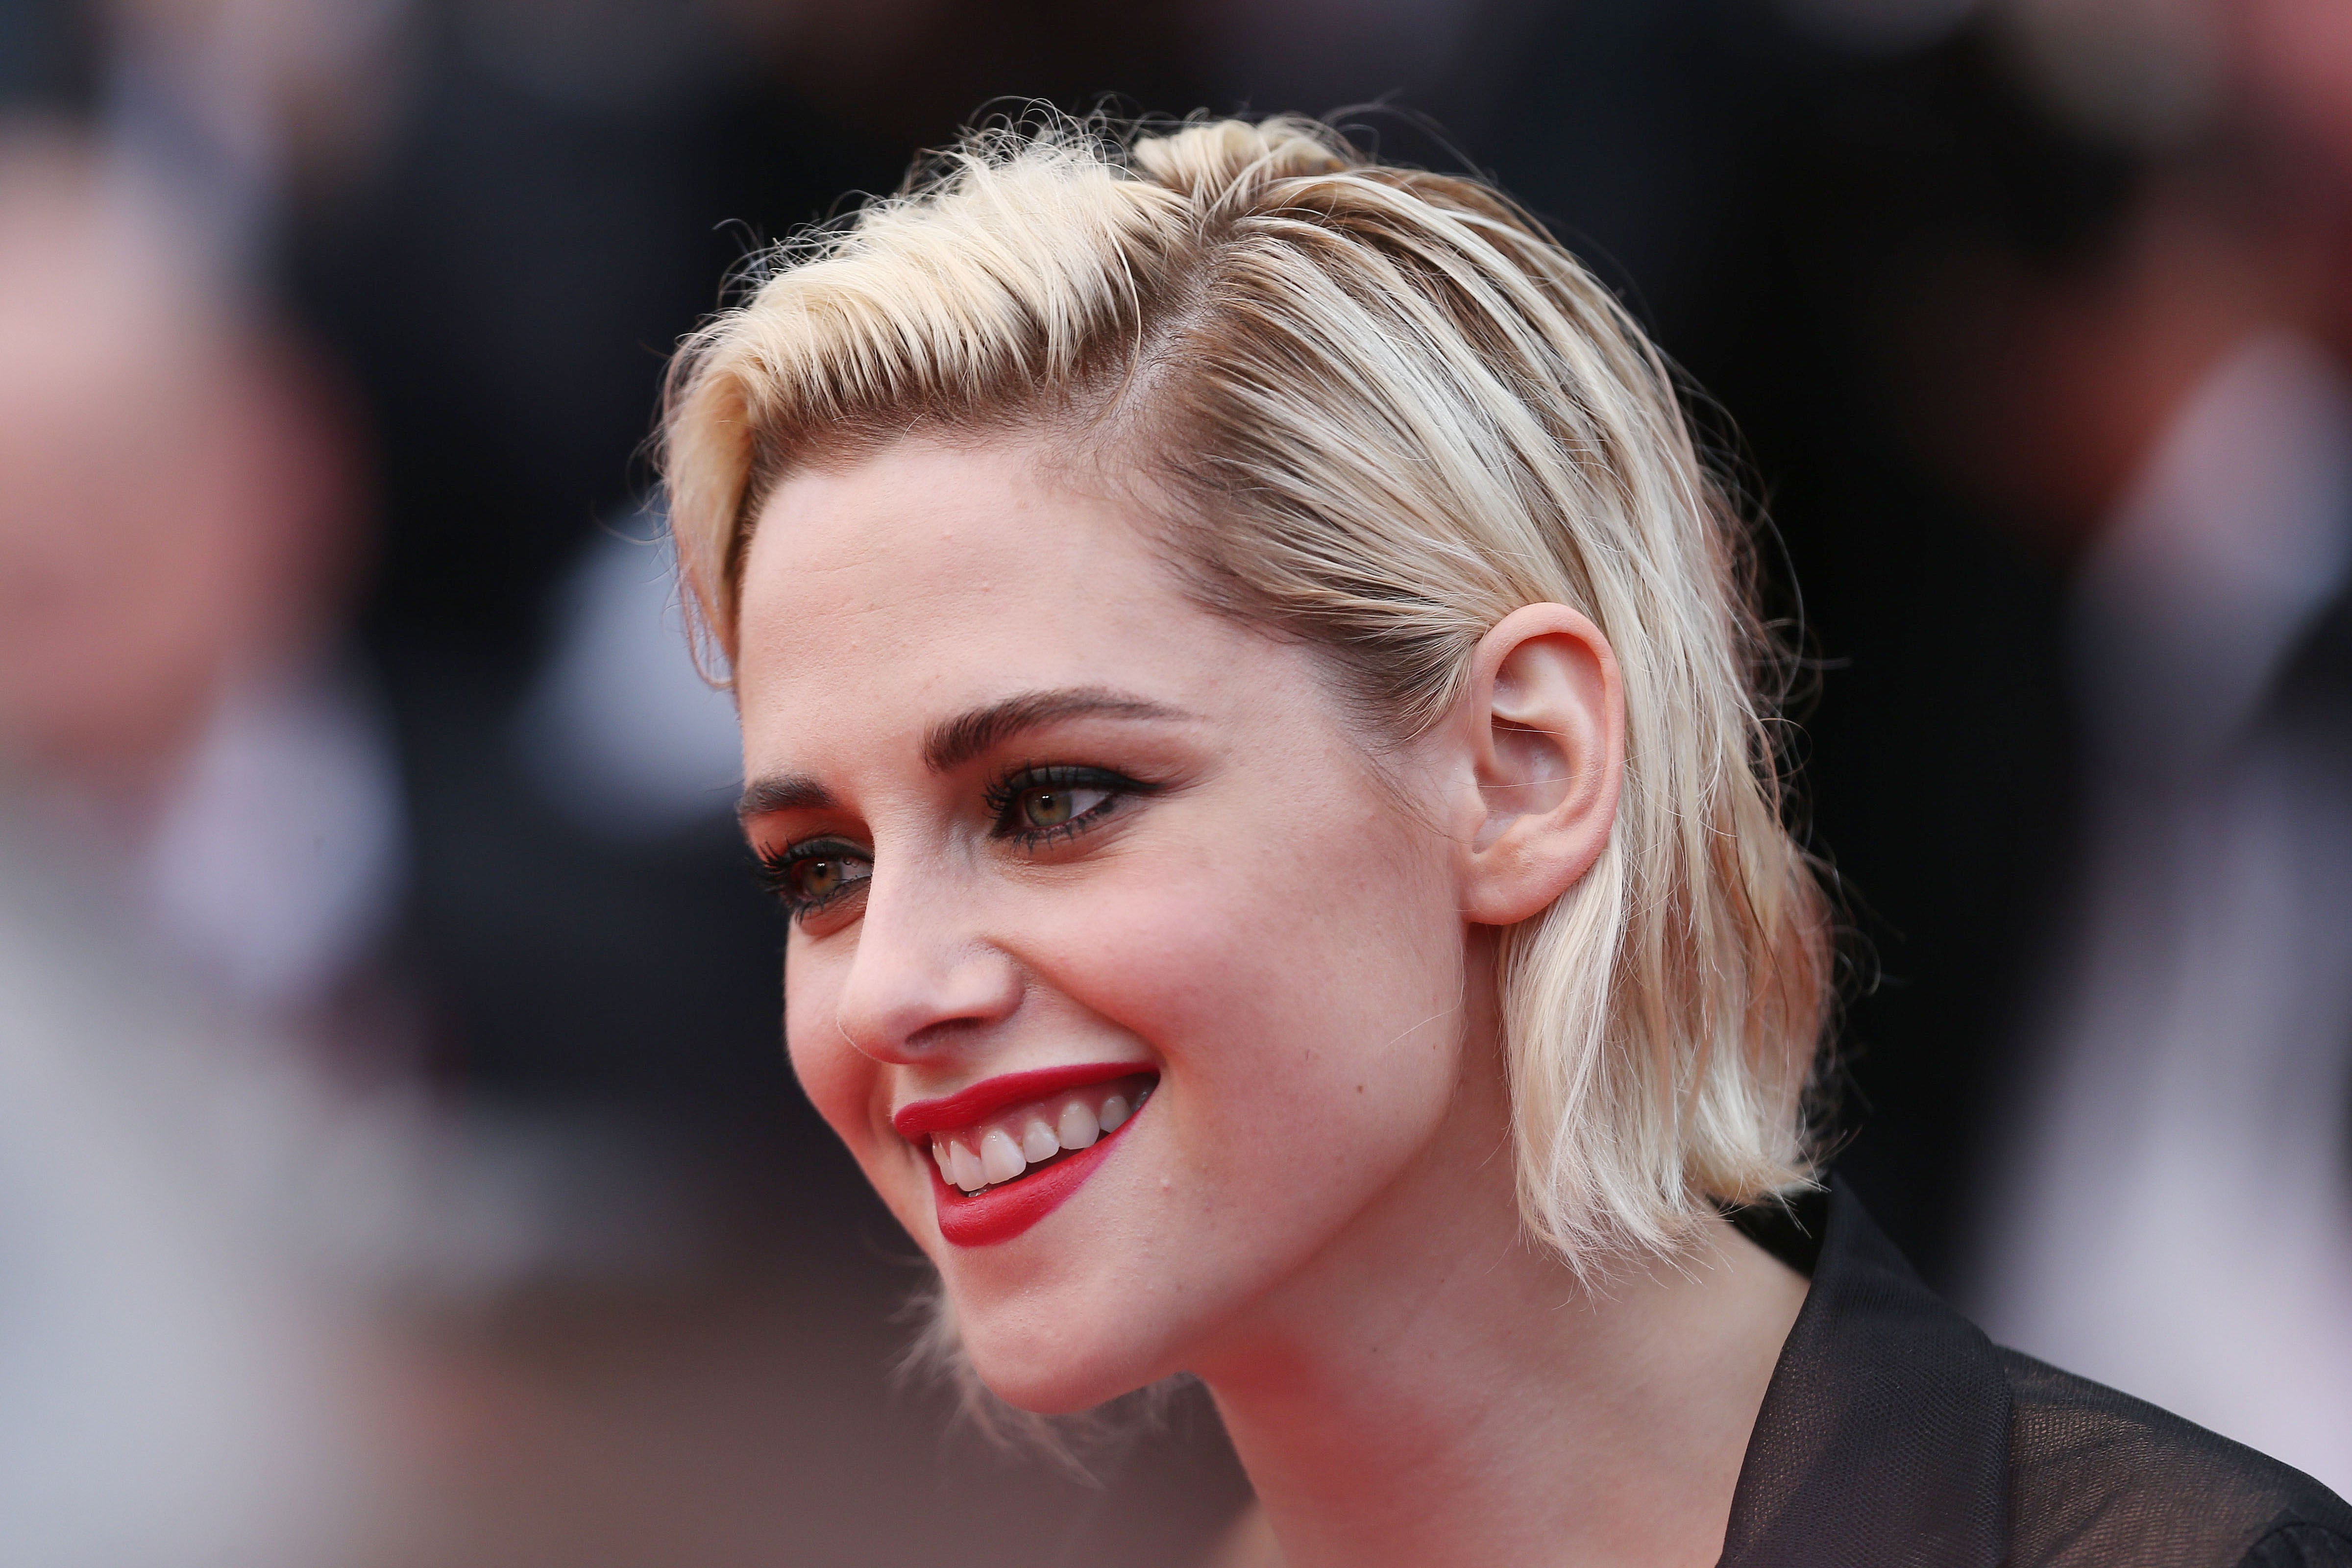 Wallpaper kristen stewart cannes 2016 cannes film for Terengganu home wallpaper 2016